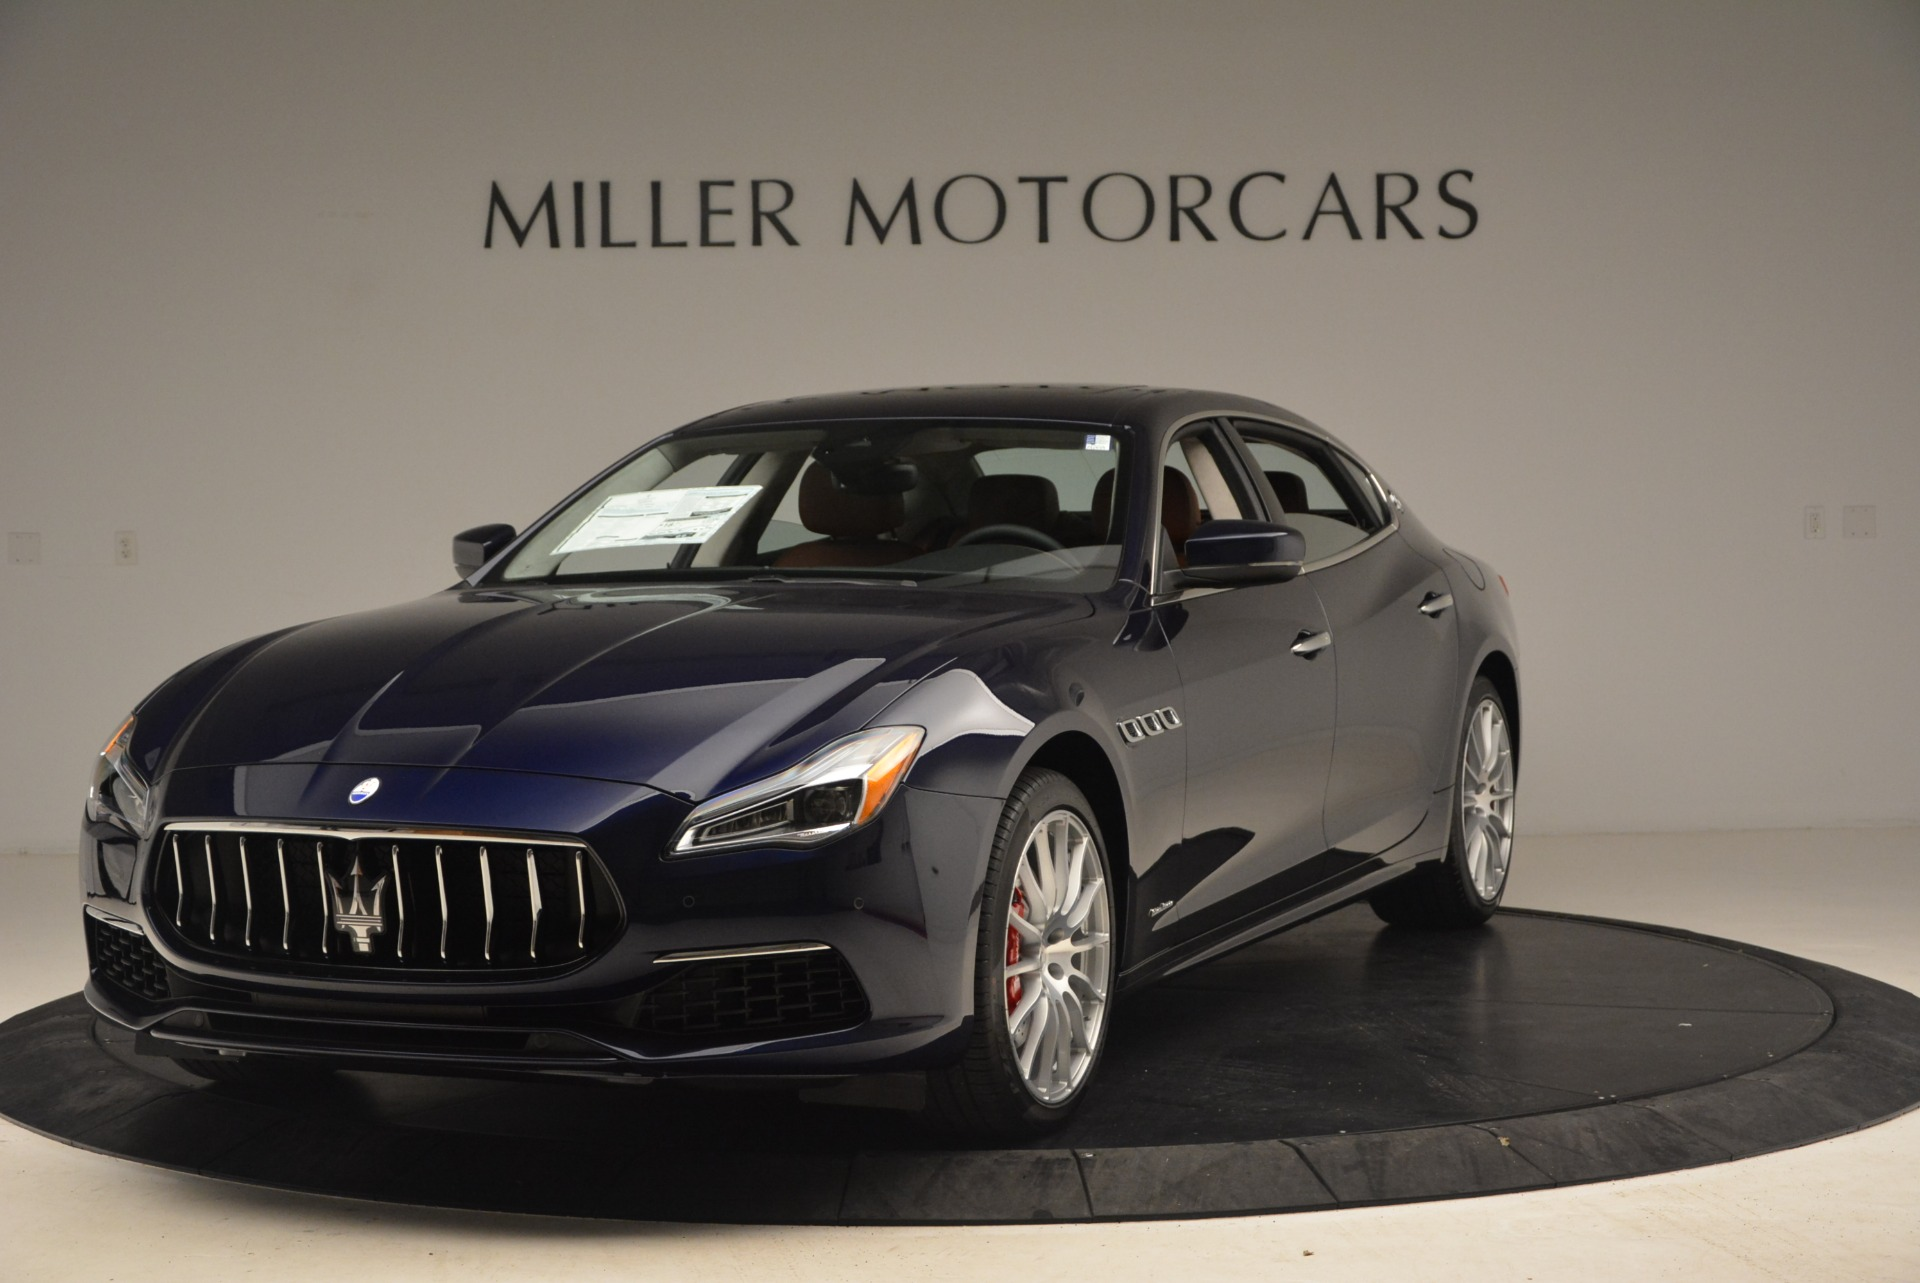 New 2019 Maserati Quattroporte S Q4 GranLusso for sale Sold at Maserati of Westport in Westport CT 06880 1